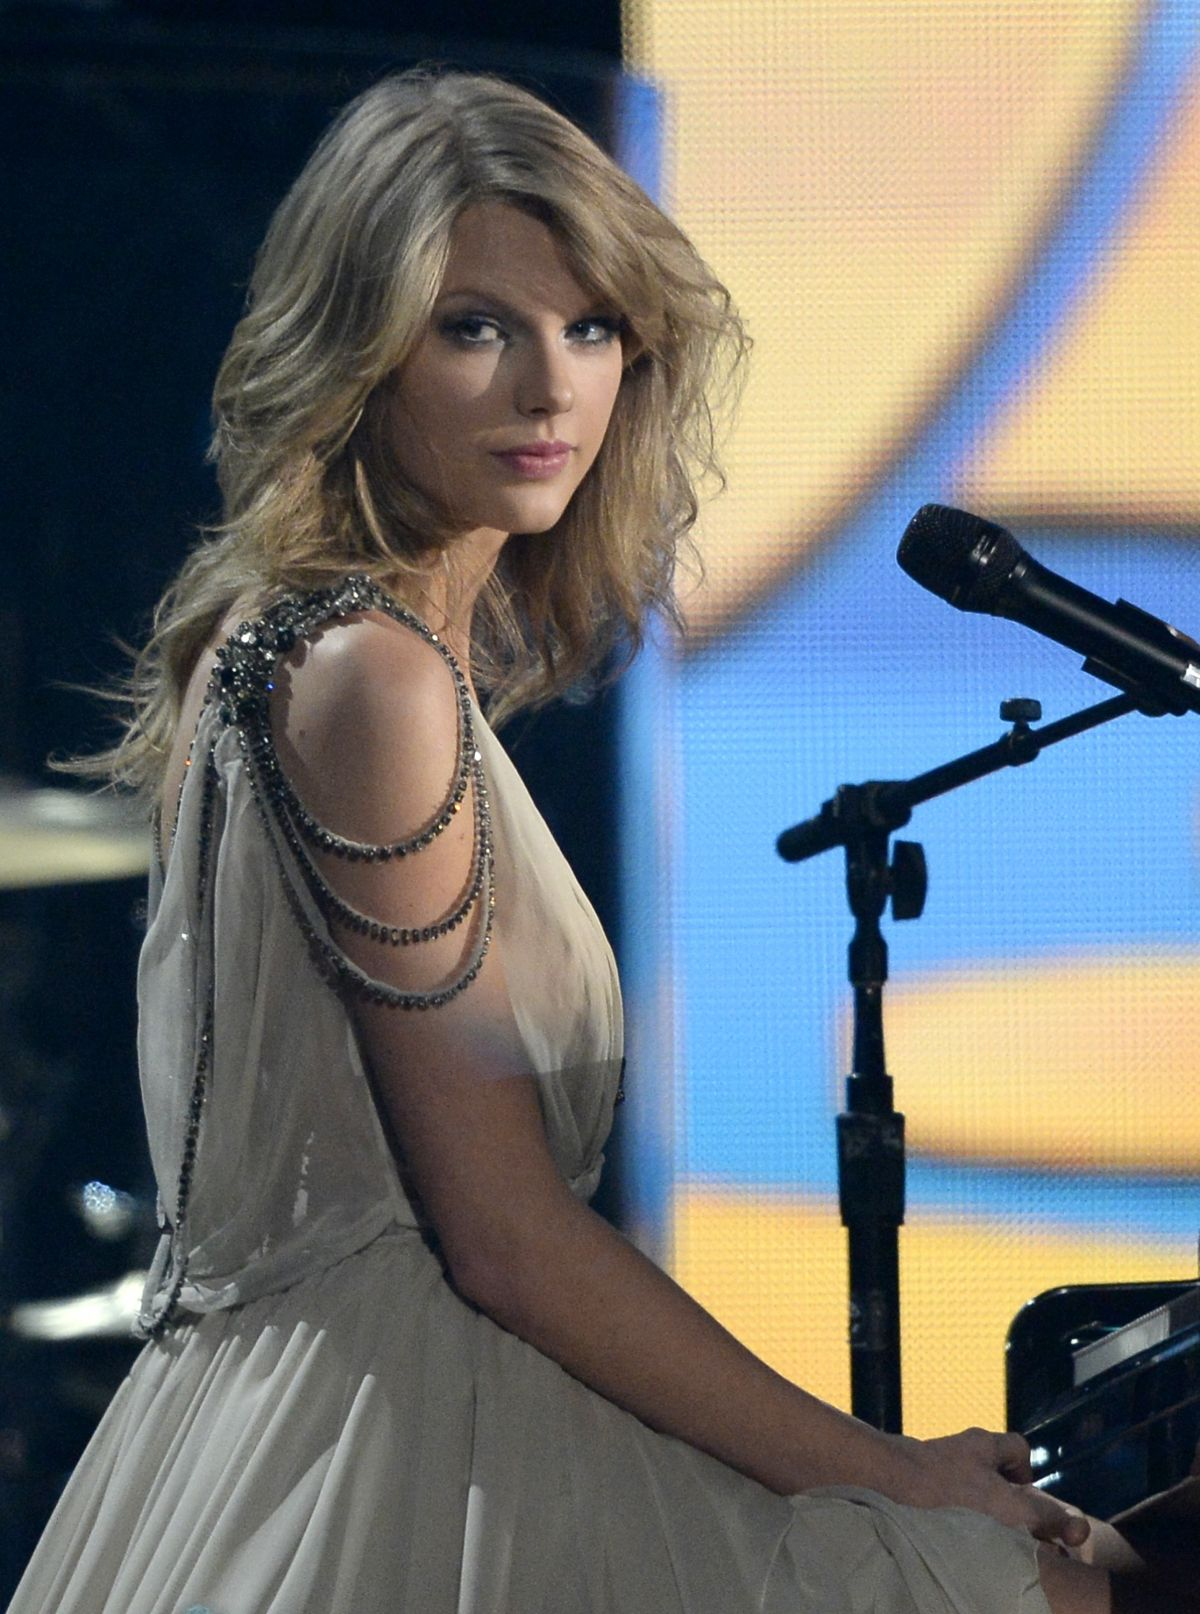 TAYLOR SWIFT Performs at 2014 Grammy Awards in Los Angeles